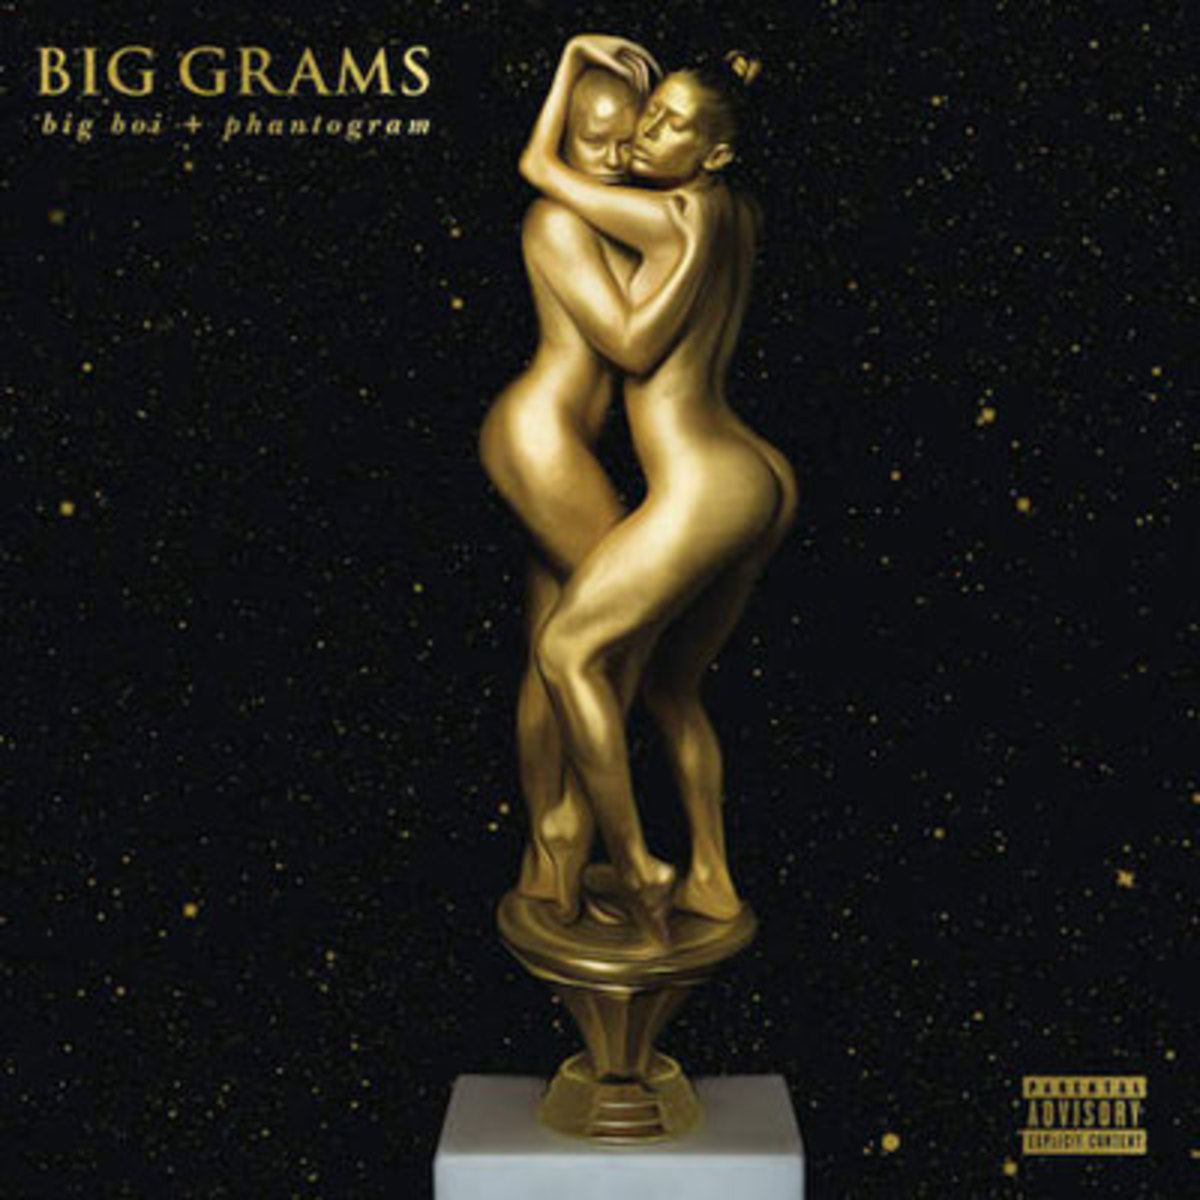 big-grams-big-grams-ep.jpg